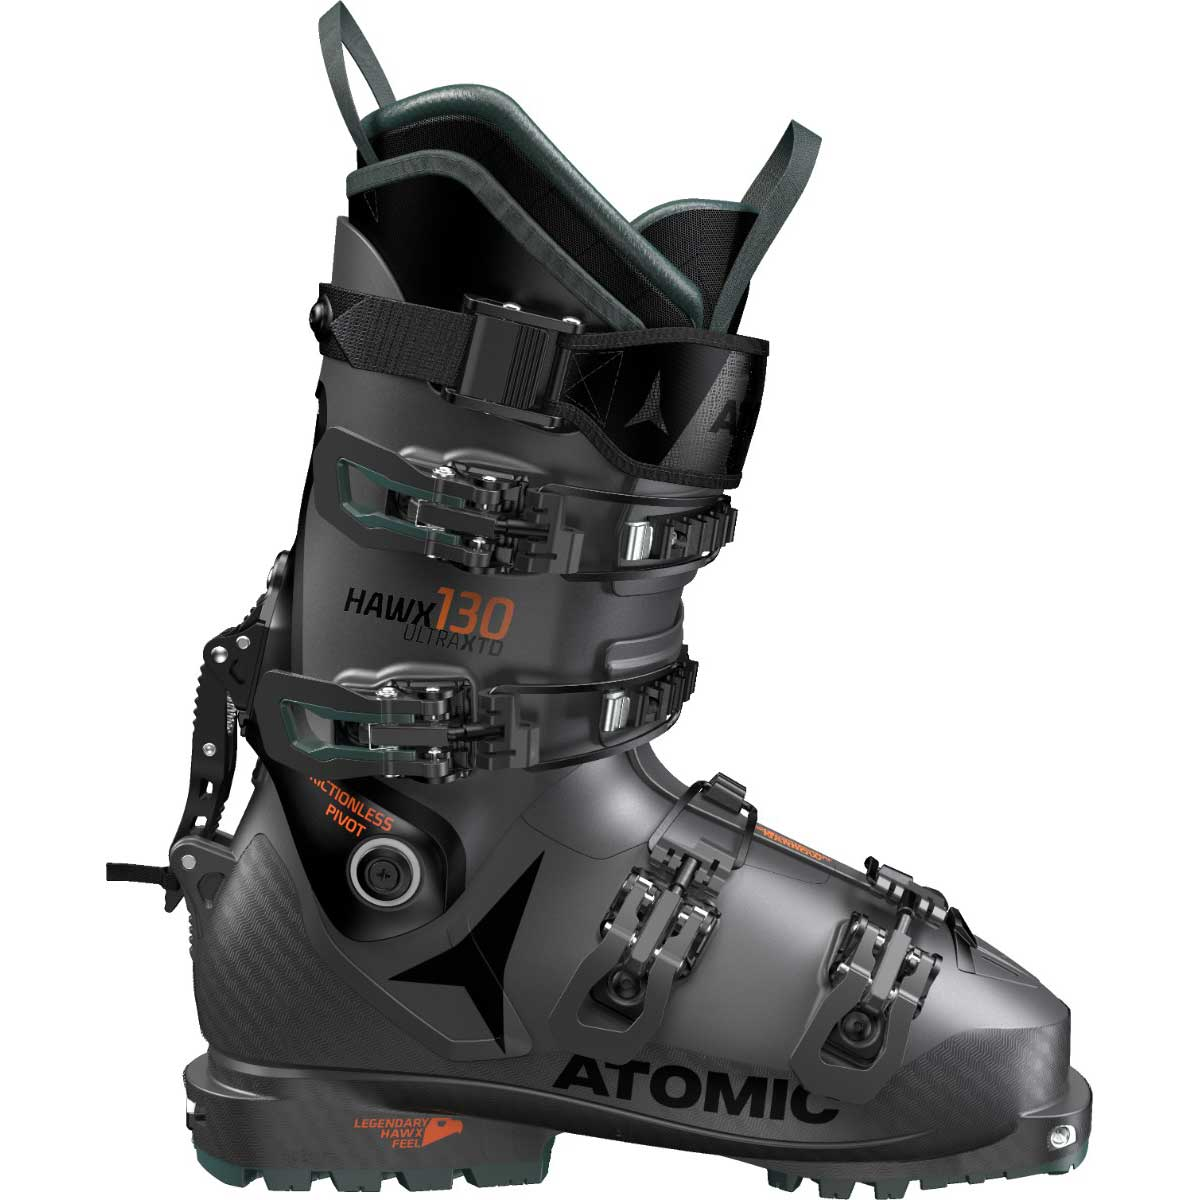 Atomic Hawx Ultra XTD 130 ski boots in Anthracite and Green